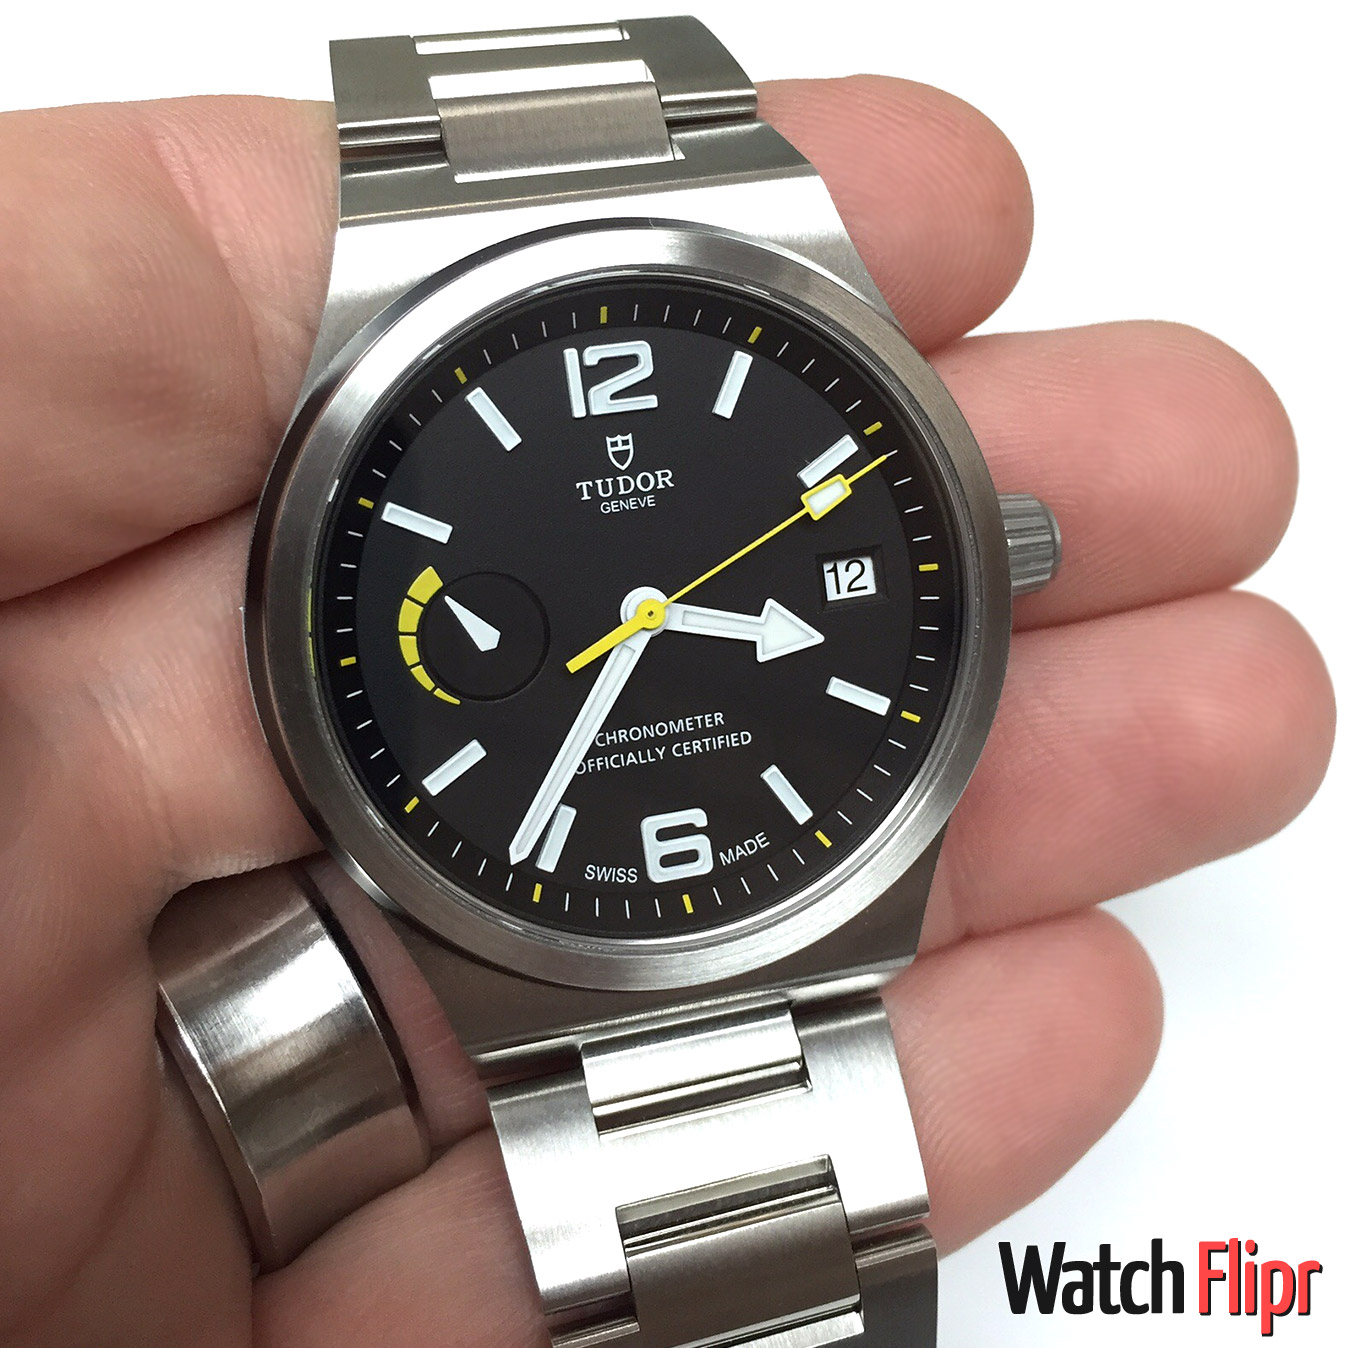 TUDOR NORTH FLAG Reference 91210N Mens Watch Review